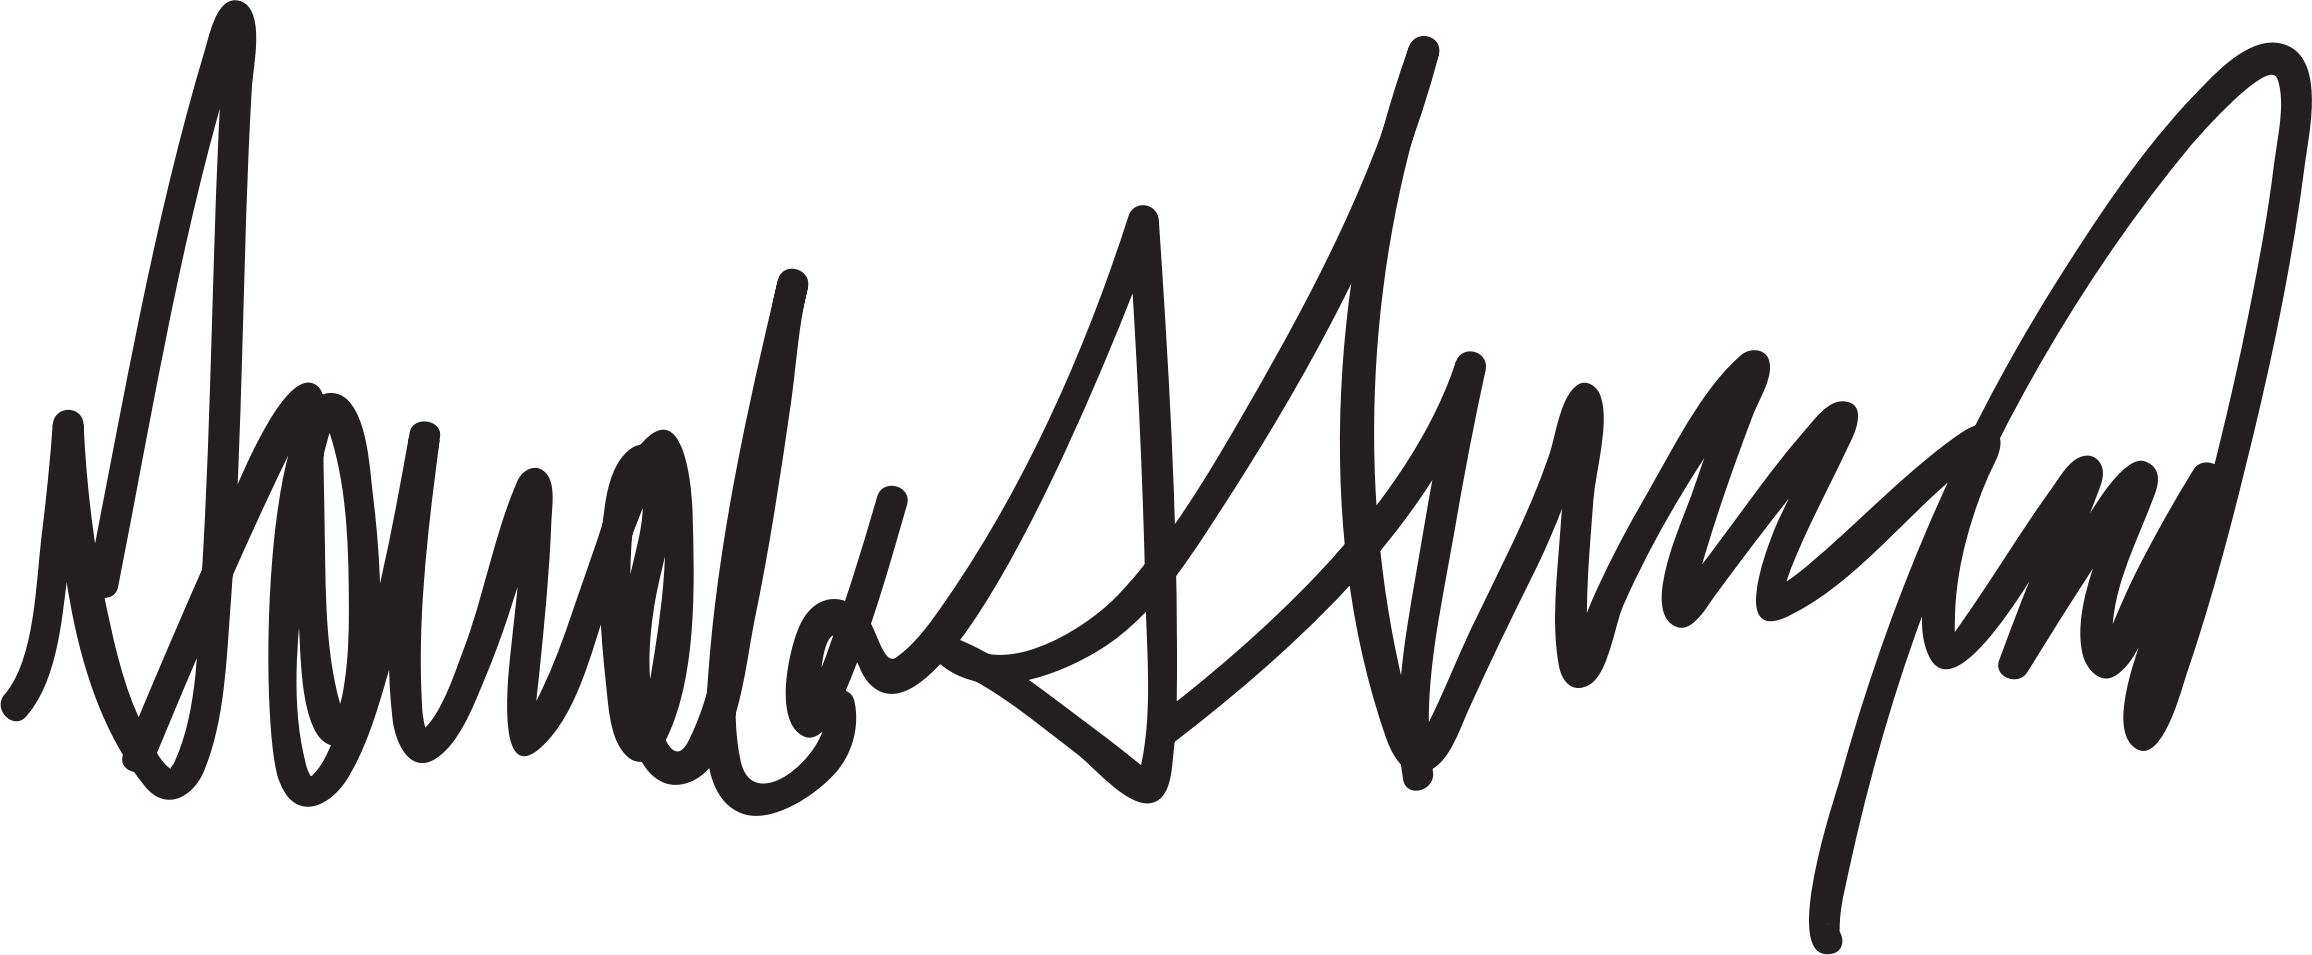 Scribble underline png. My thoughts on presidential